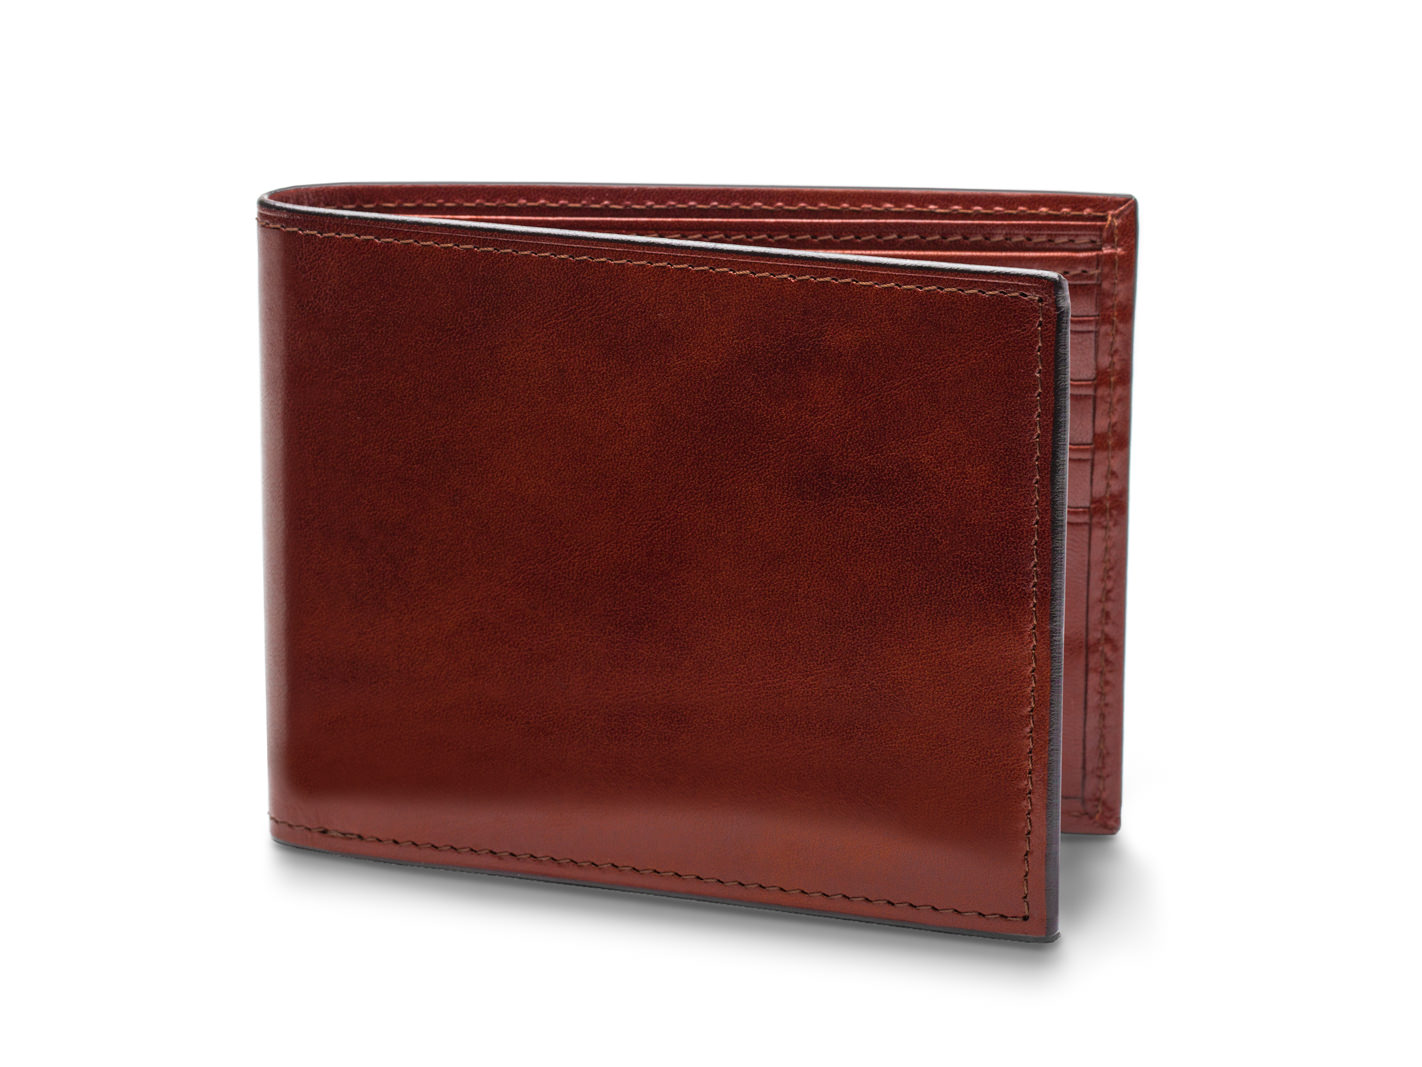 Bifold With Card / I.D. Flap - 58 Dark Brown